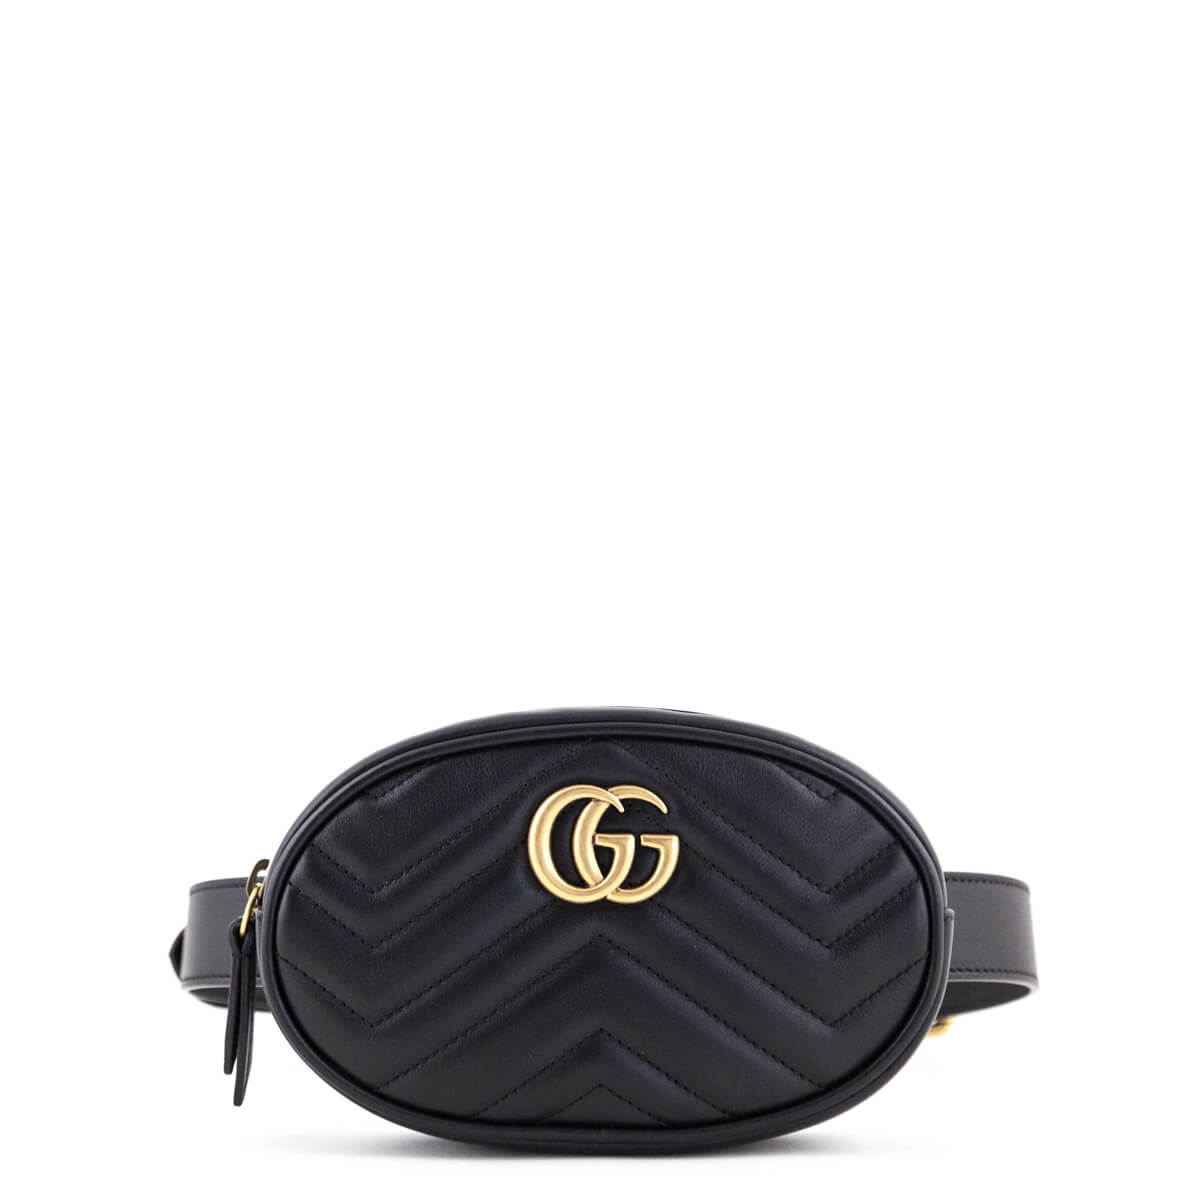 Gucci Black GG Chevron Matelassé Marmont Belt Bag 75 - LOVE that BAG -  Preowned Authentic ...